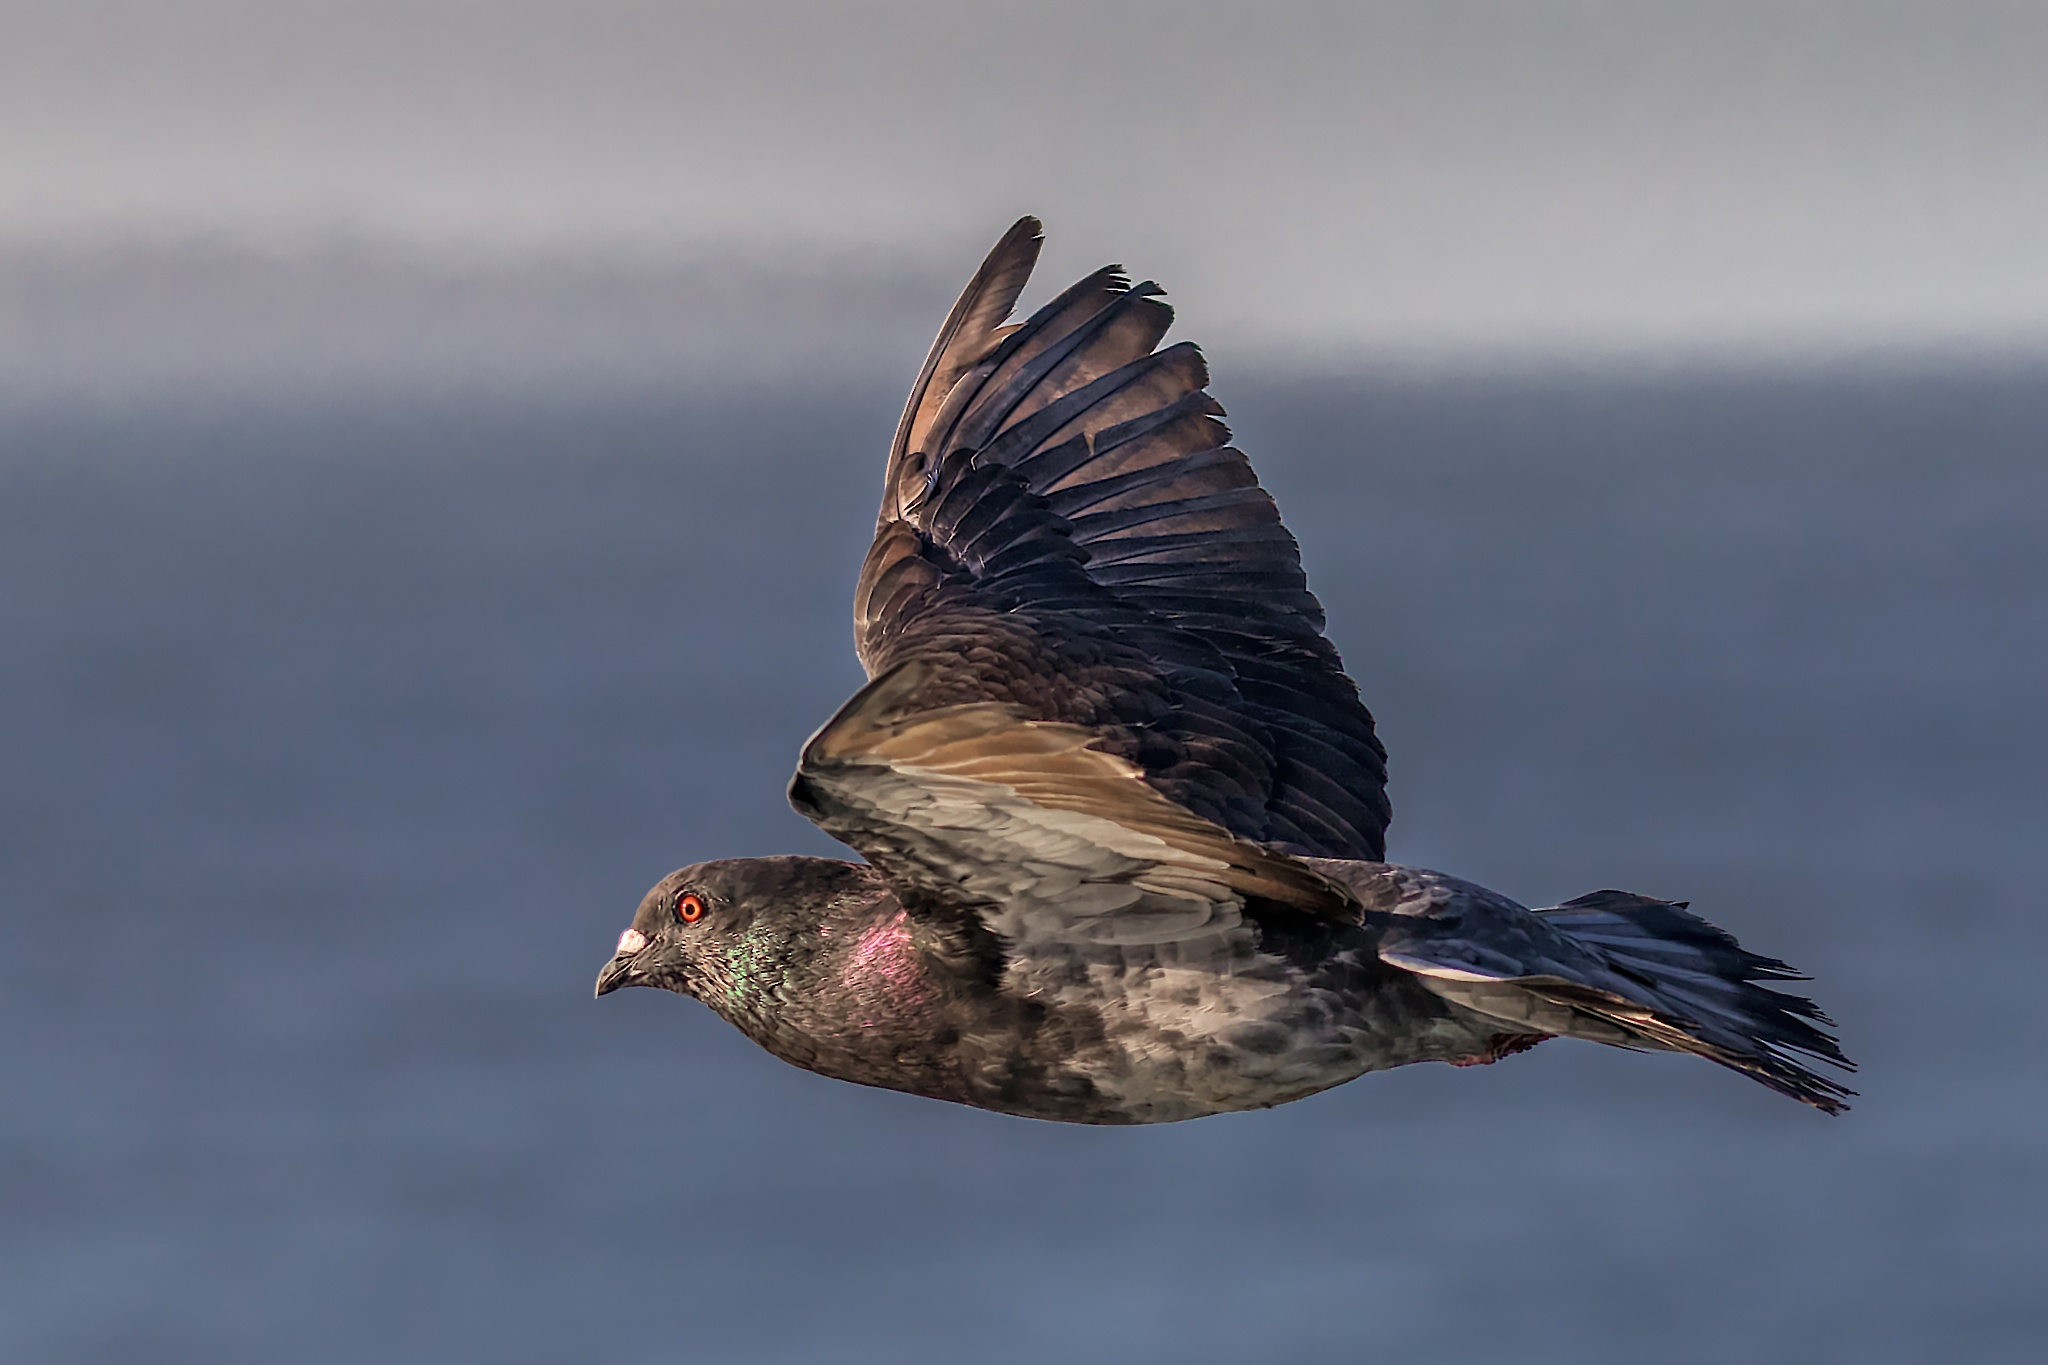 Flying pigeon by Boris Droutman